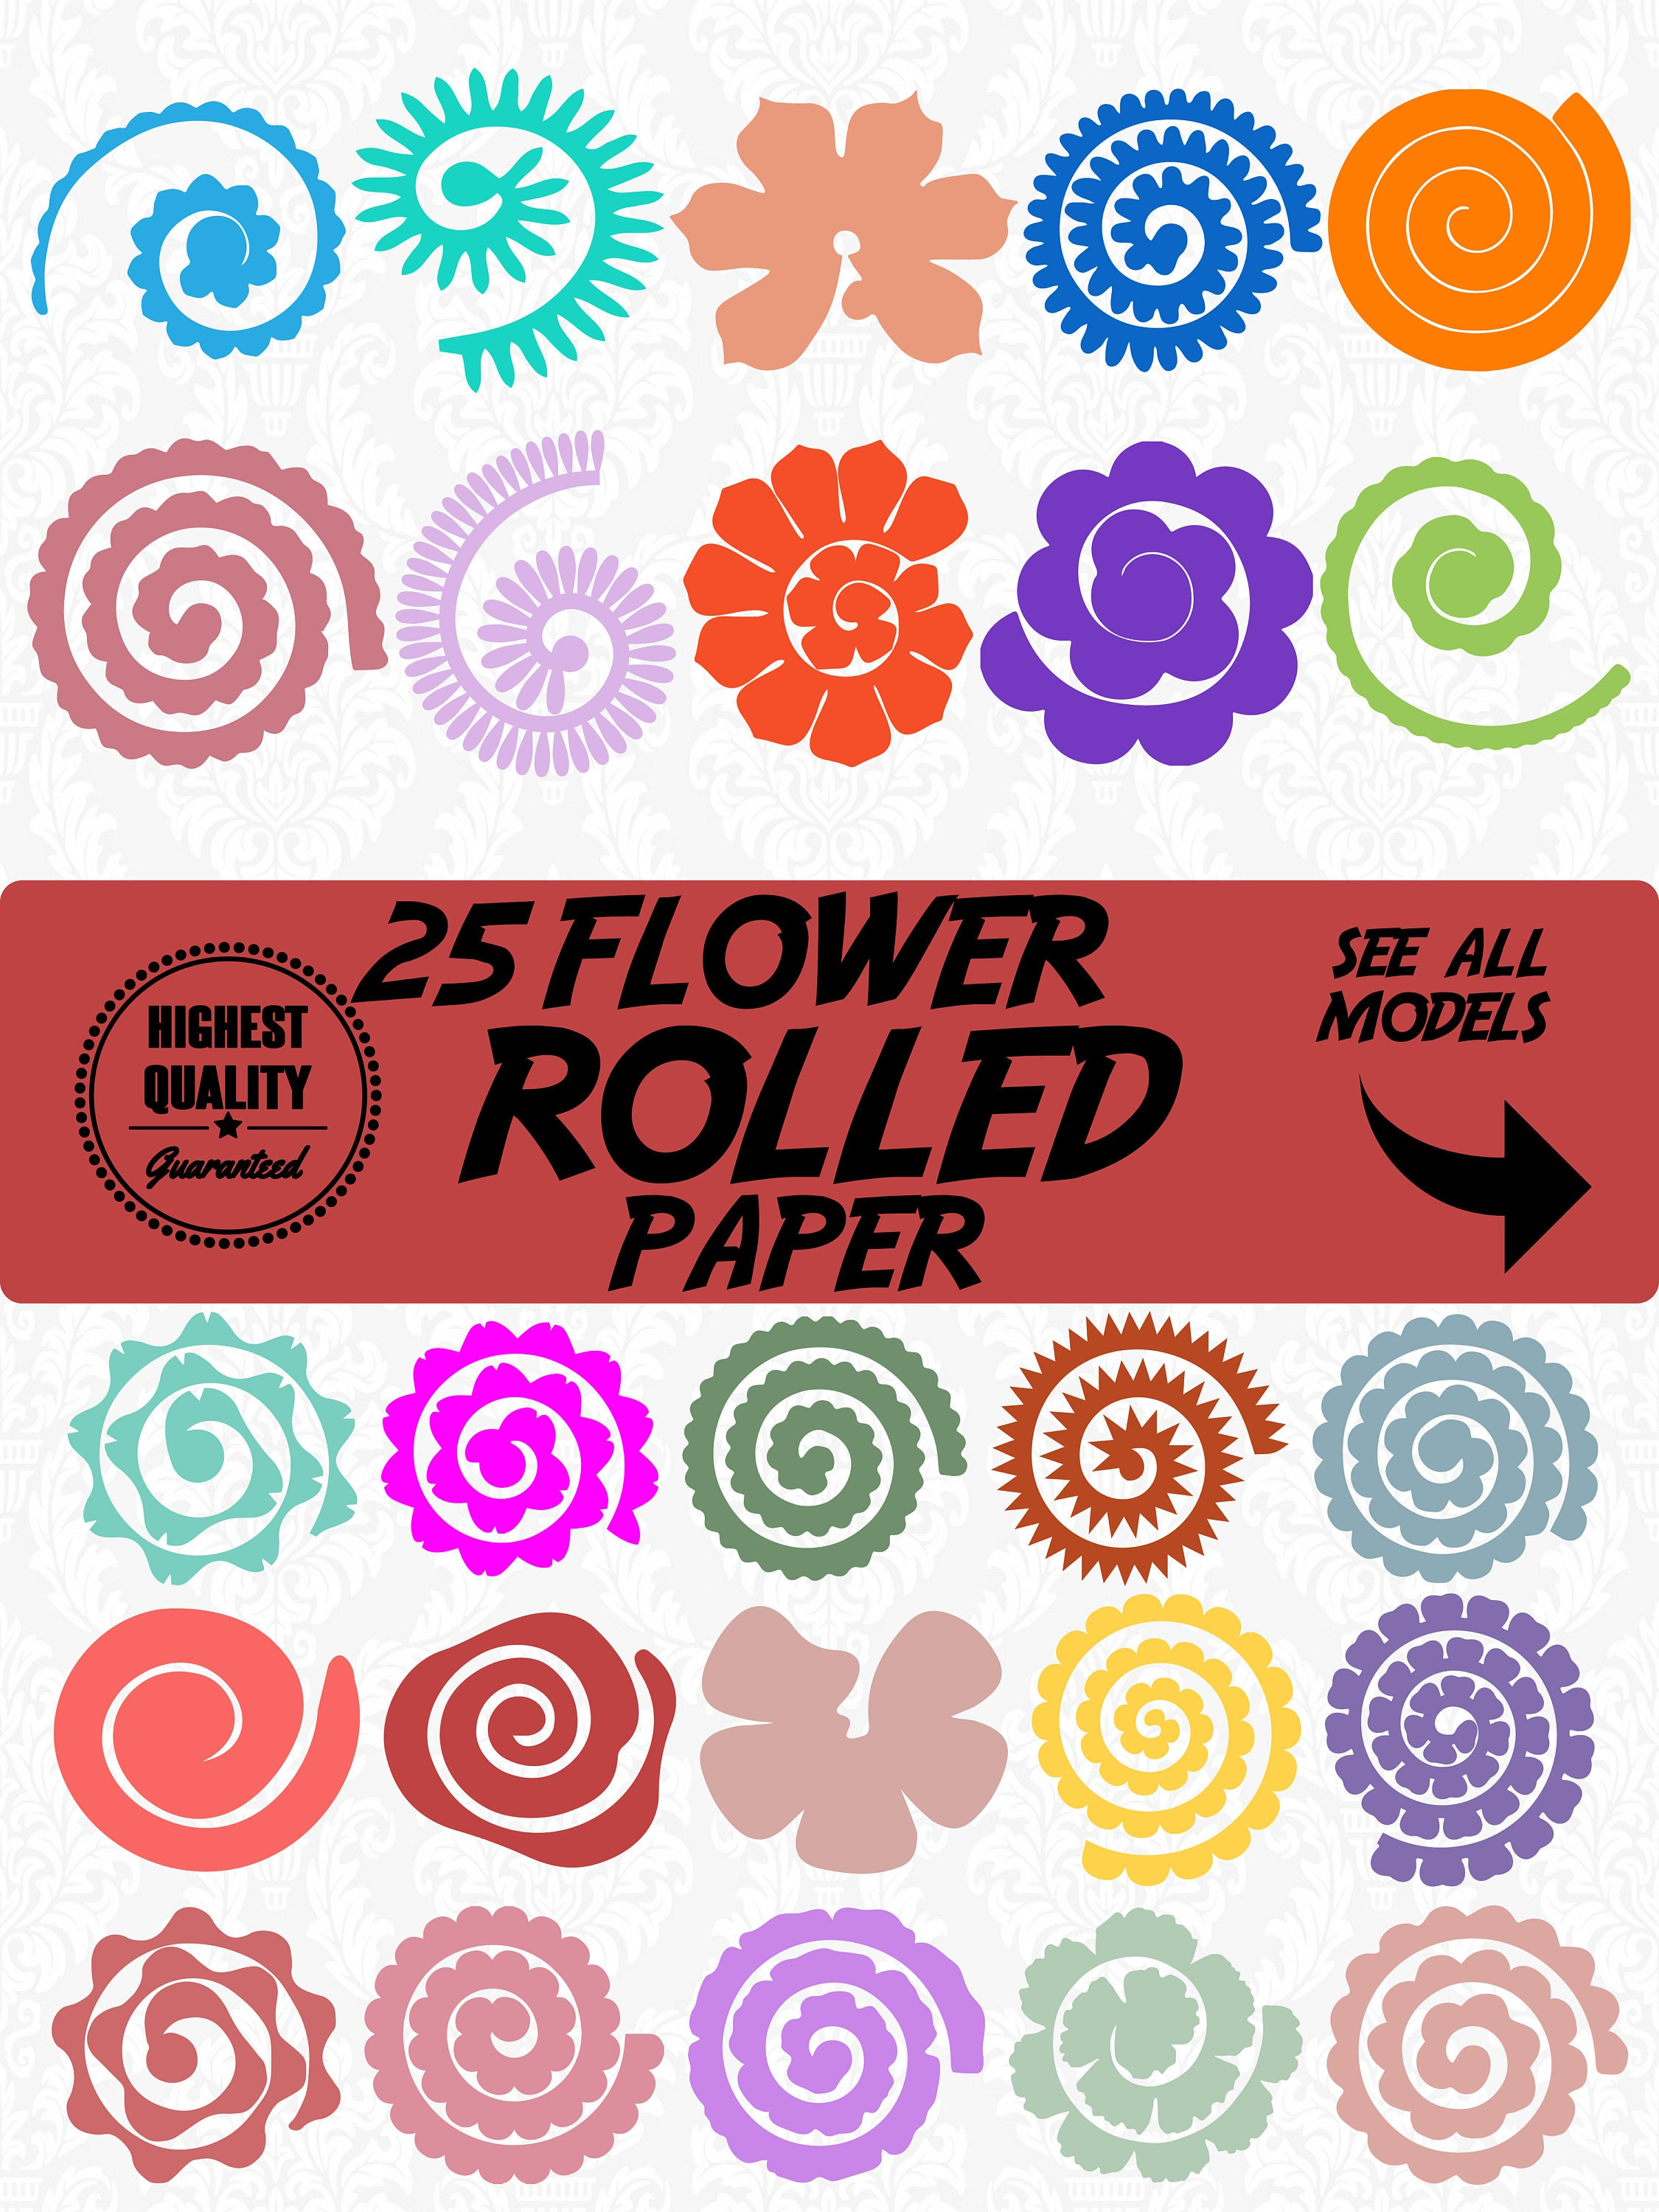 25 Bundle Flower Rolled Paper Flowers Rolled Paperrolled Etsy